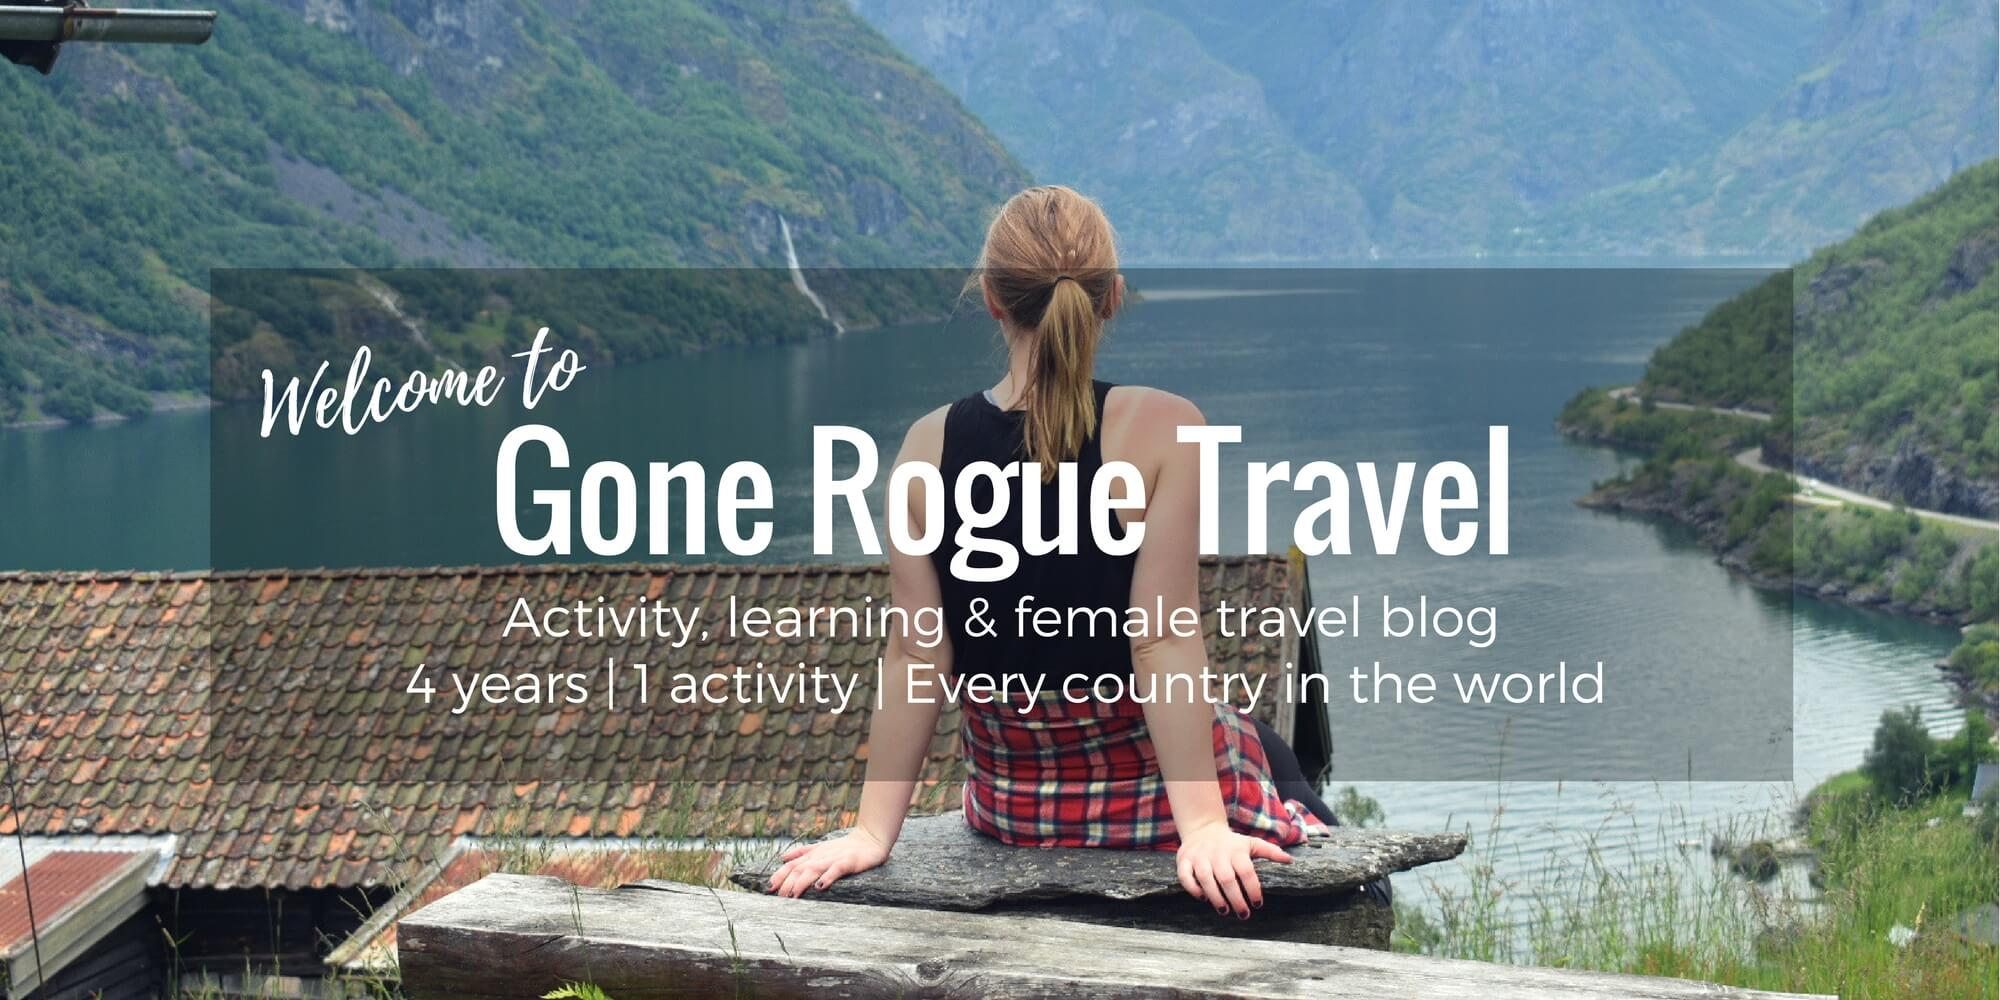 Gone Rogue Travel